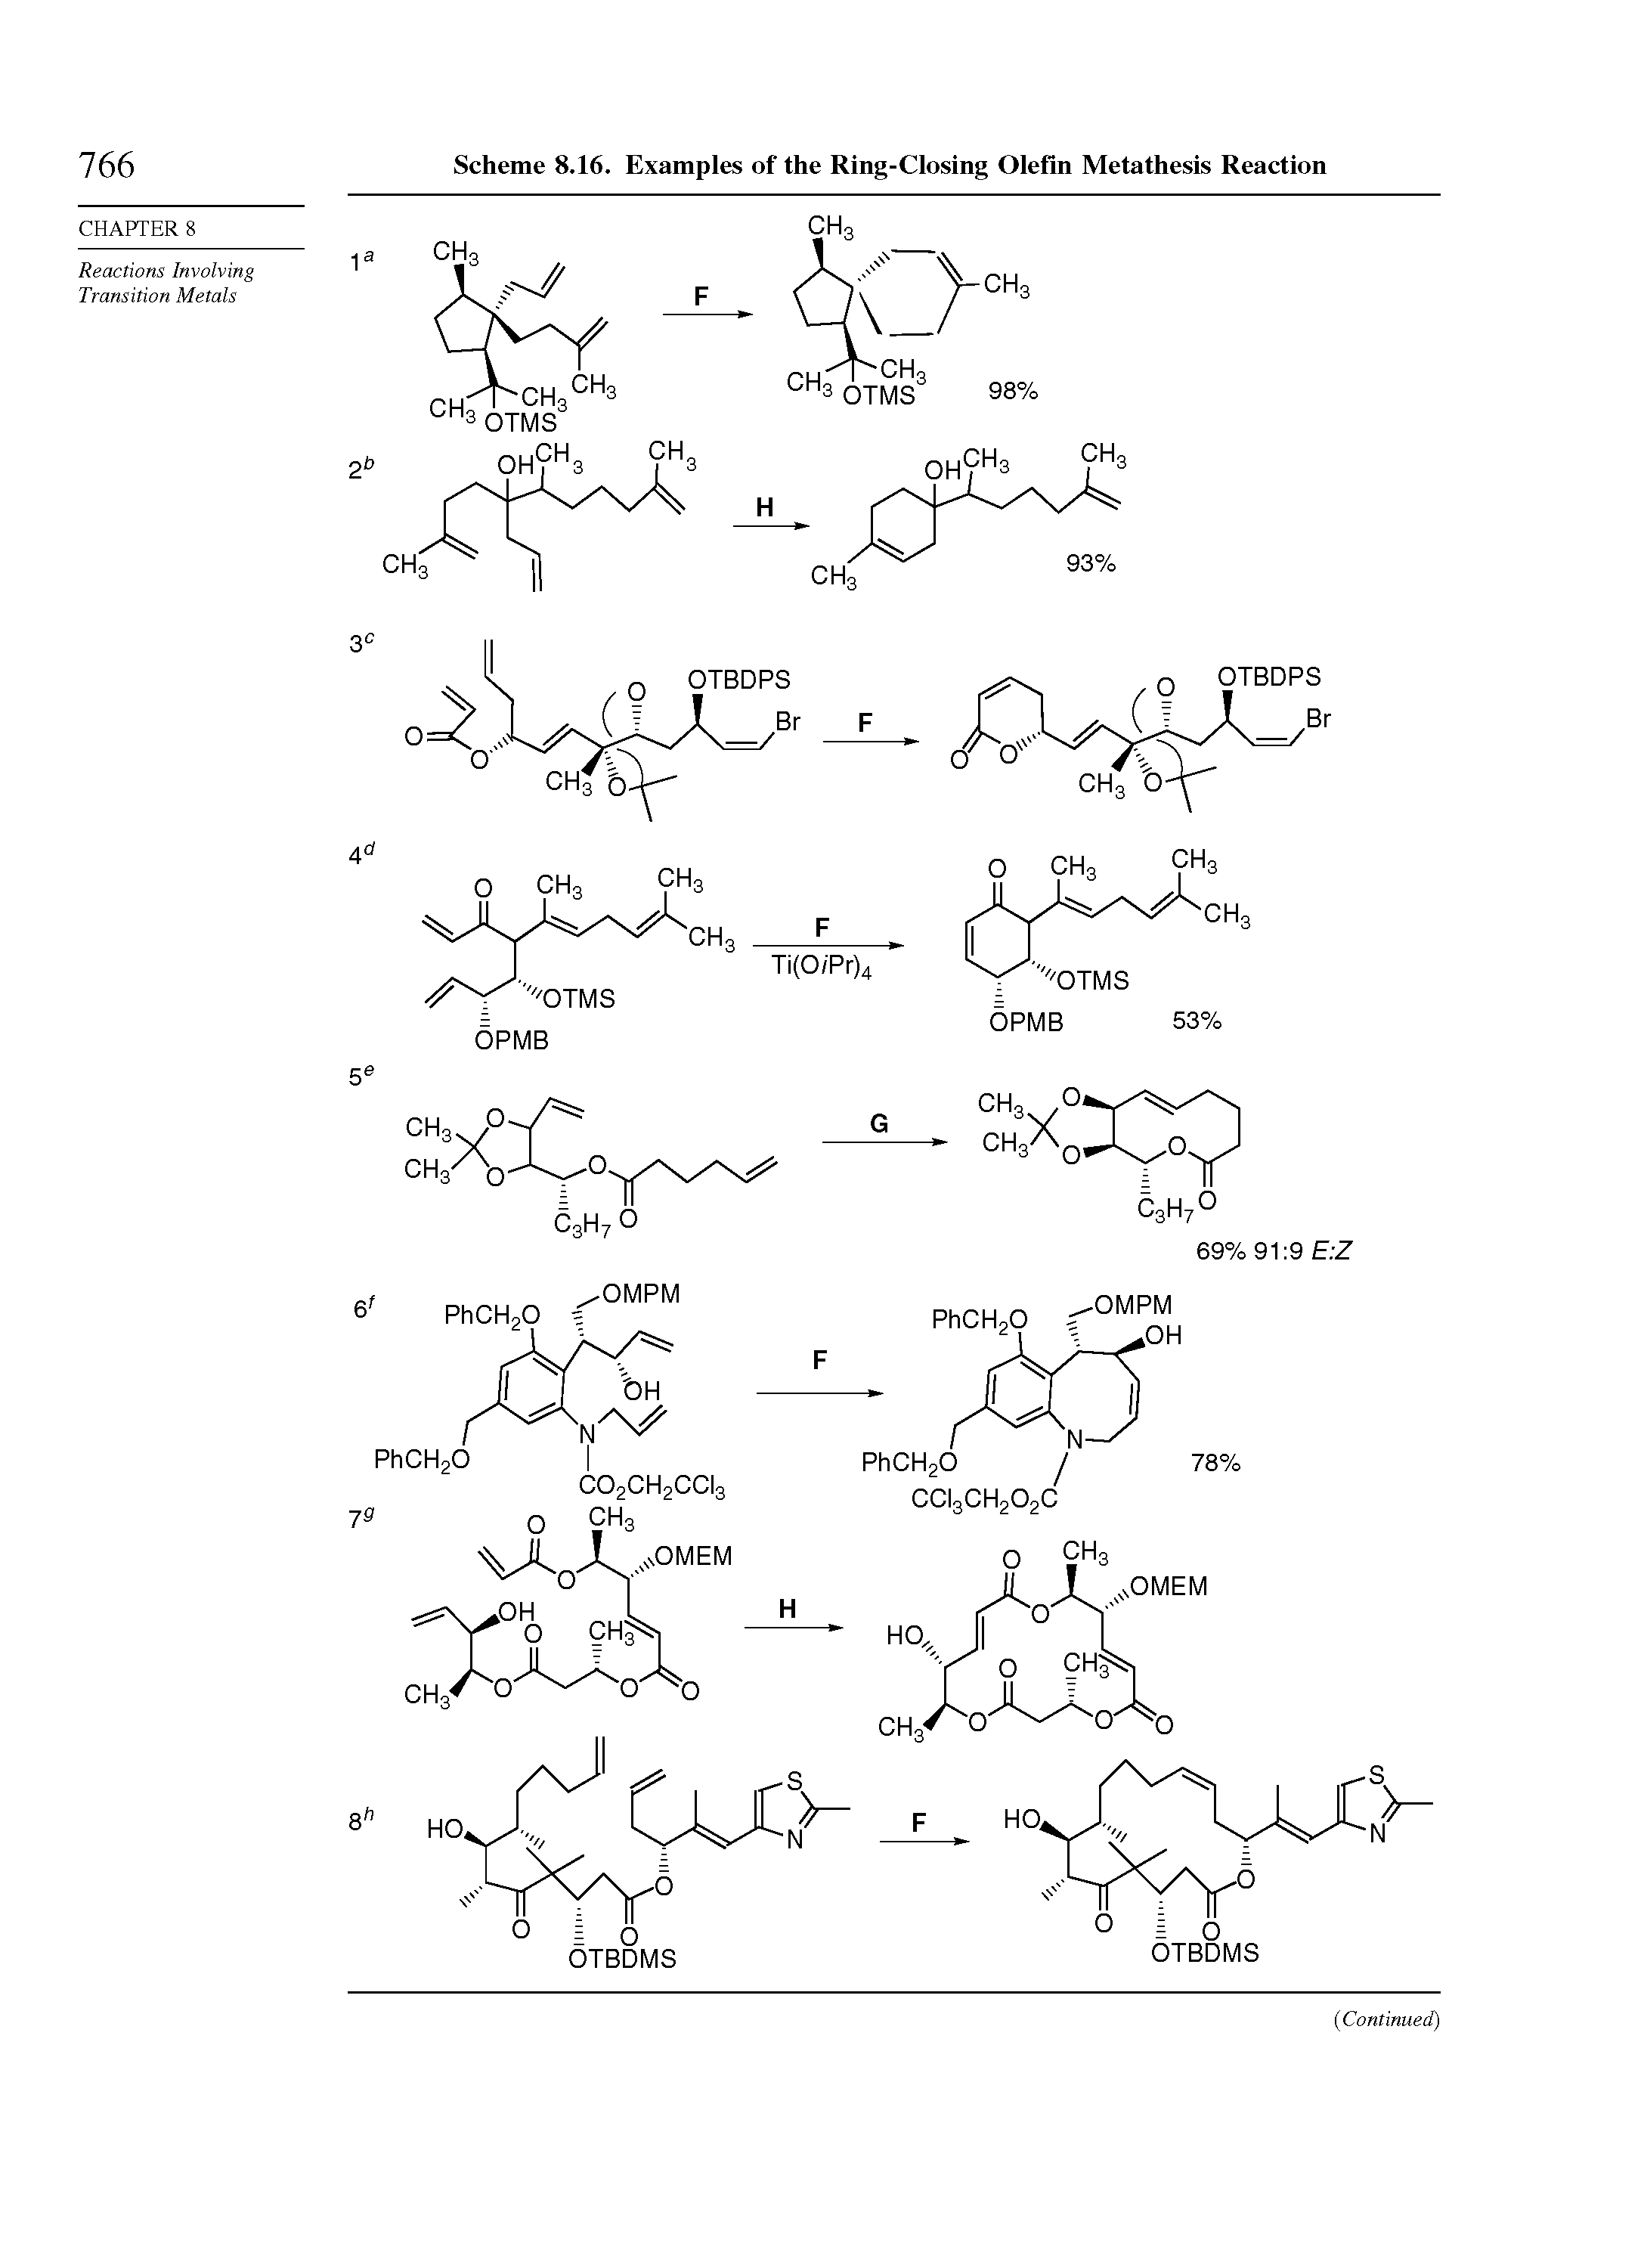 "Scheme 8.16. Examples of the <a href=""/info/ring_closing_olefin_metathesis"">Ring-Closing Olefin Metathesis</a> Reaction"